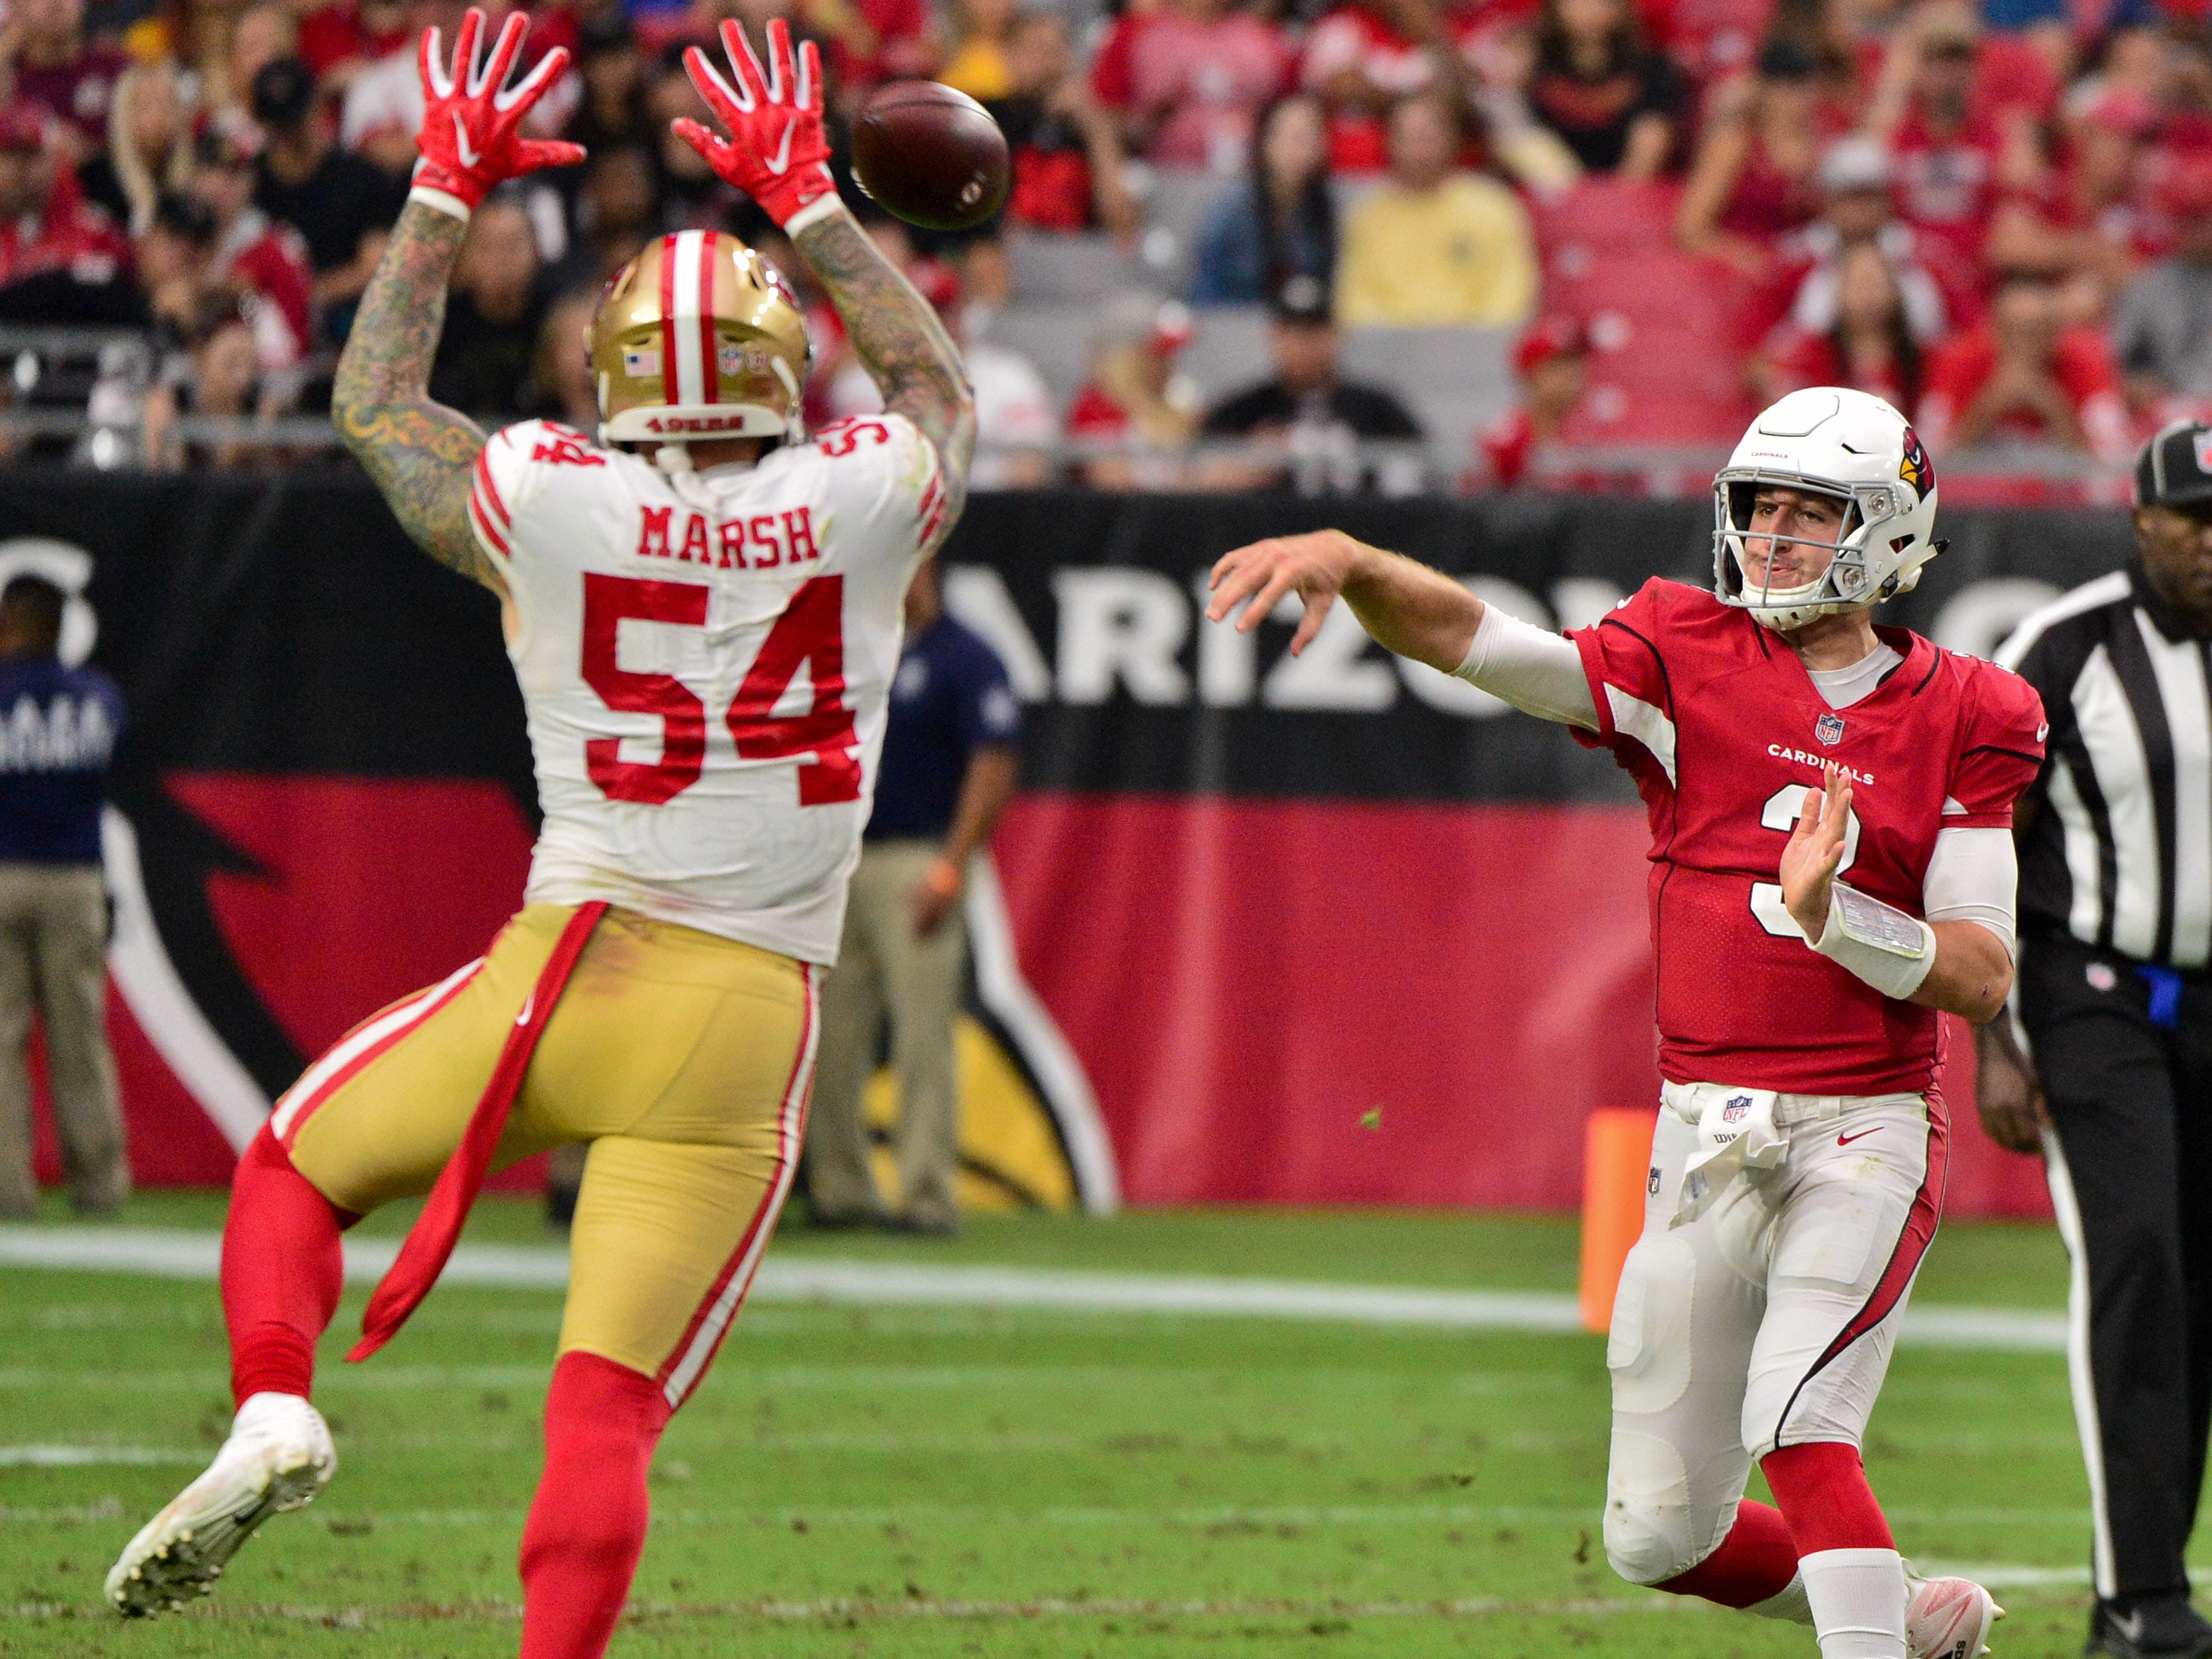 Oct 28, 2018; Glendale, AZ, USA; Arizona Cardinals quarterback Josh Rosen (3) throws as San Francisco 49ers defensive end Cassius Marsh (54) attepts the block during the first half at State Farm Stadium.